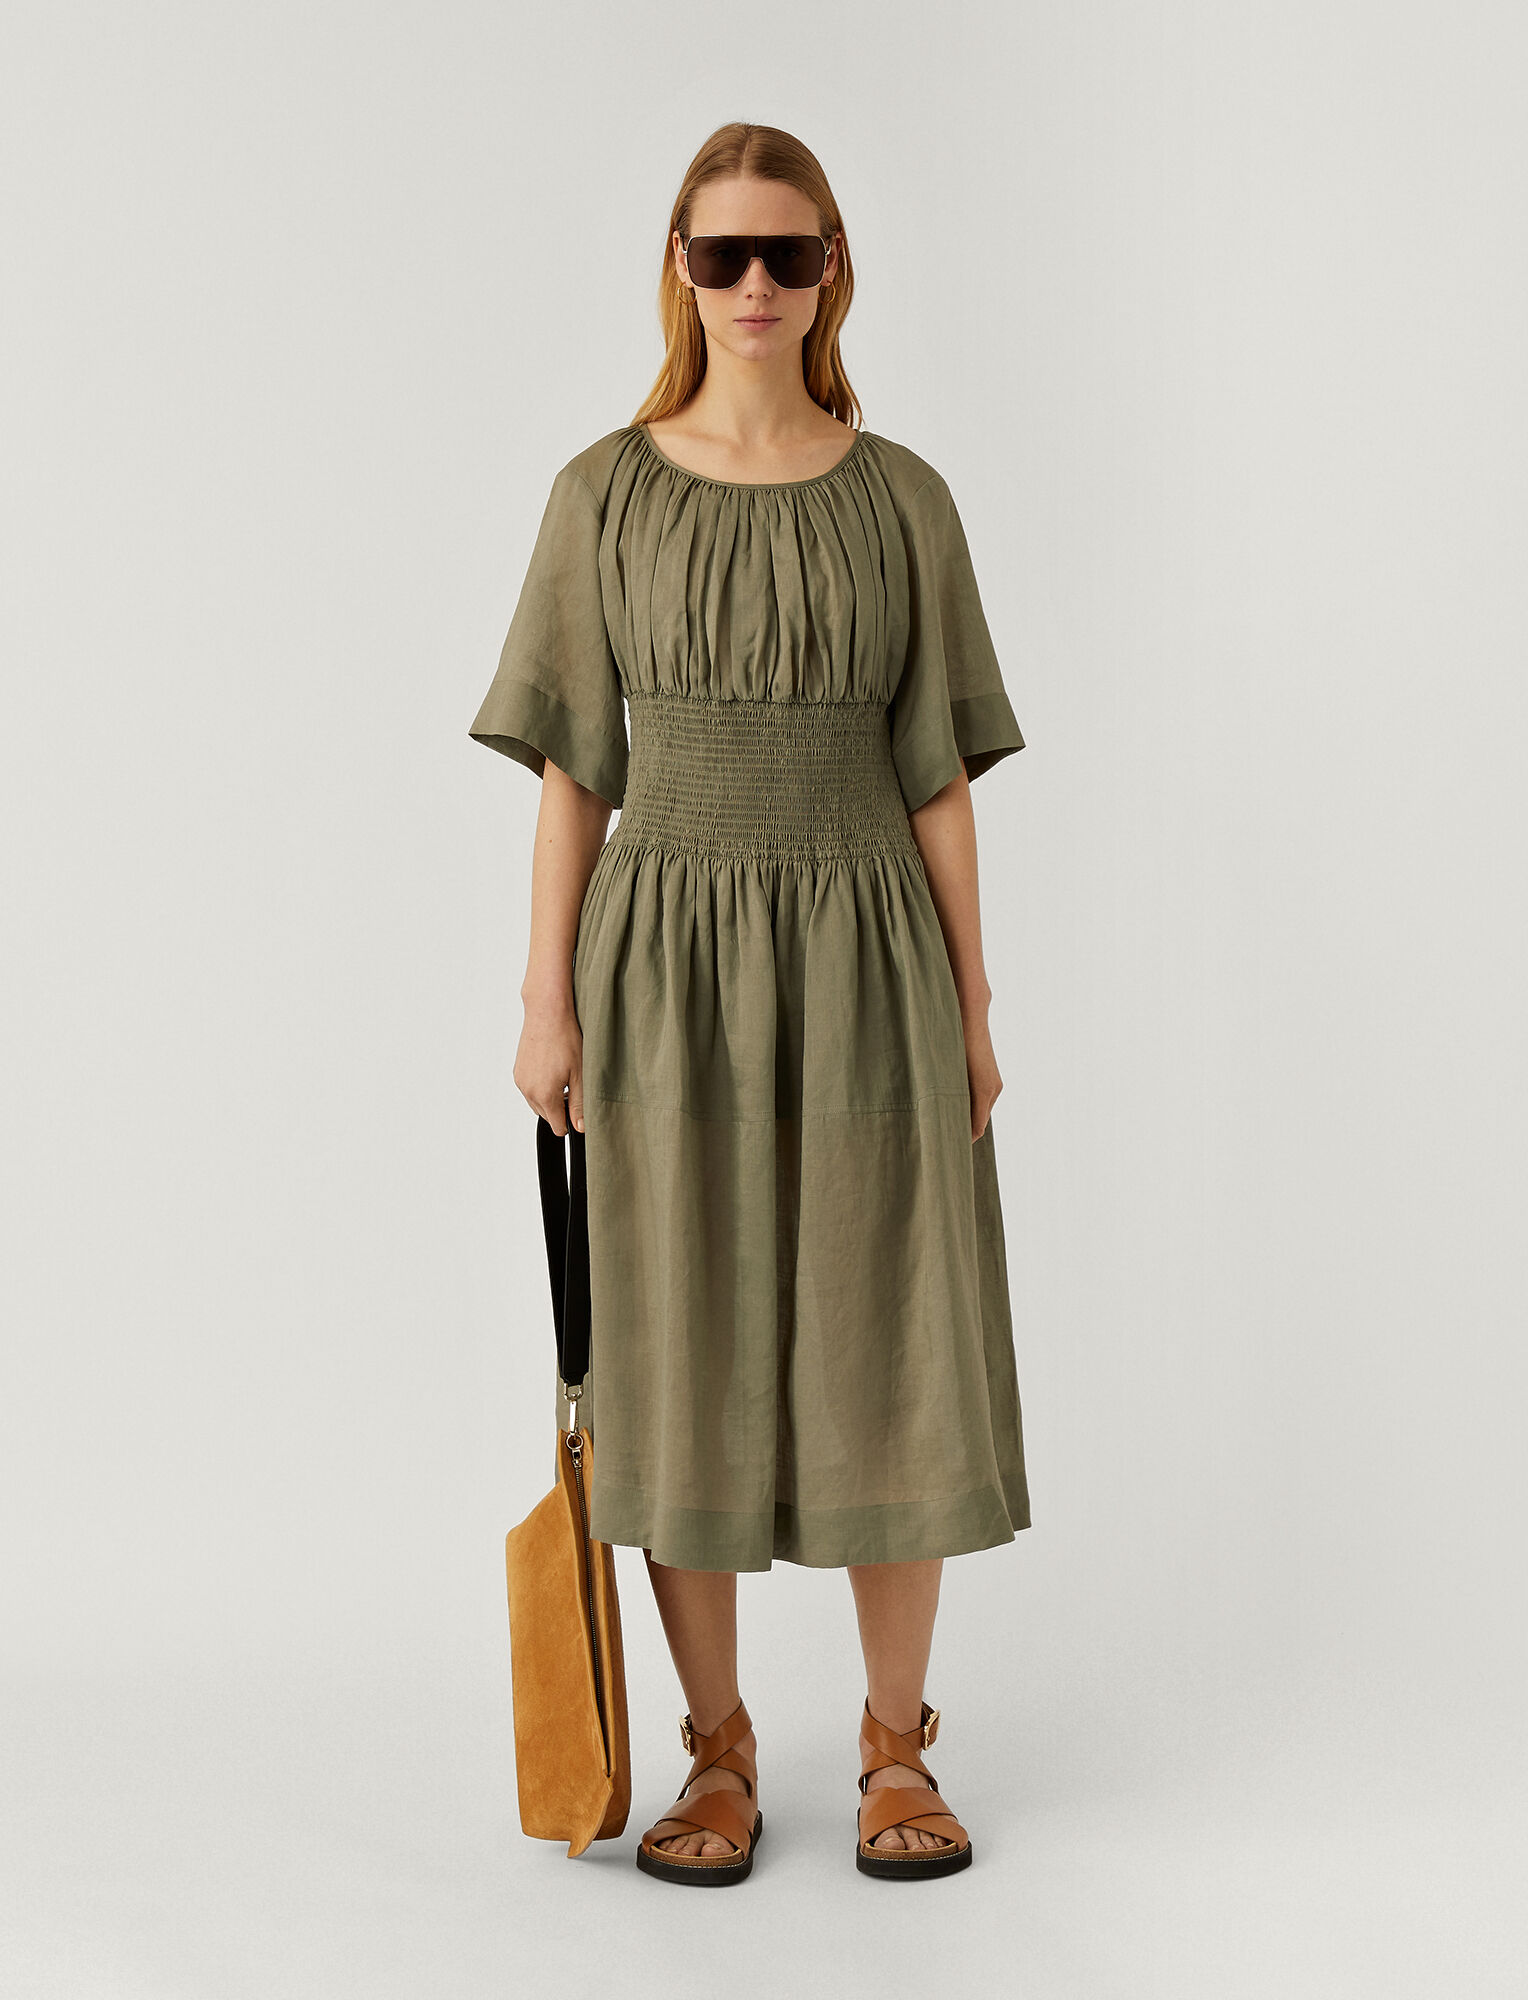 Joseph, Ramie Voile Daison Dress, in ARGIL